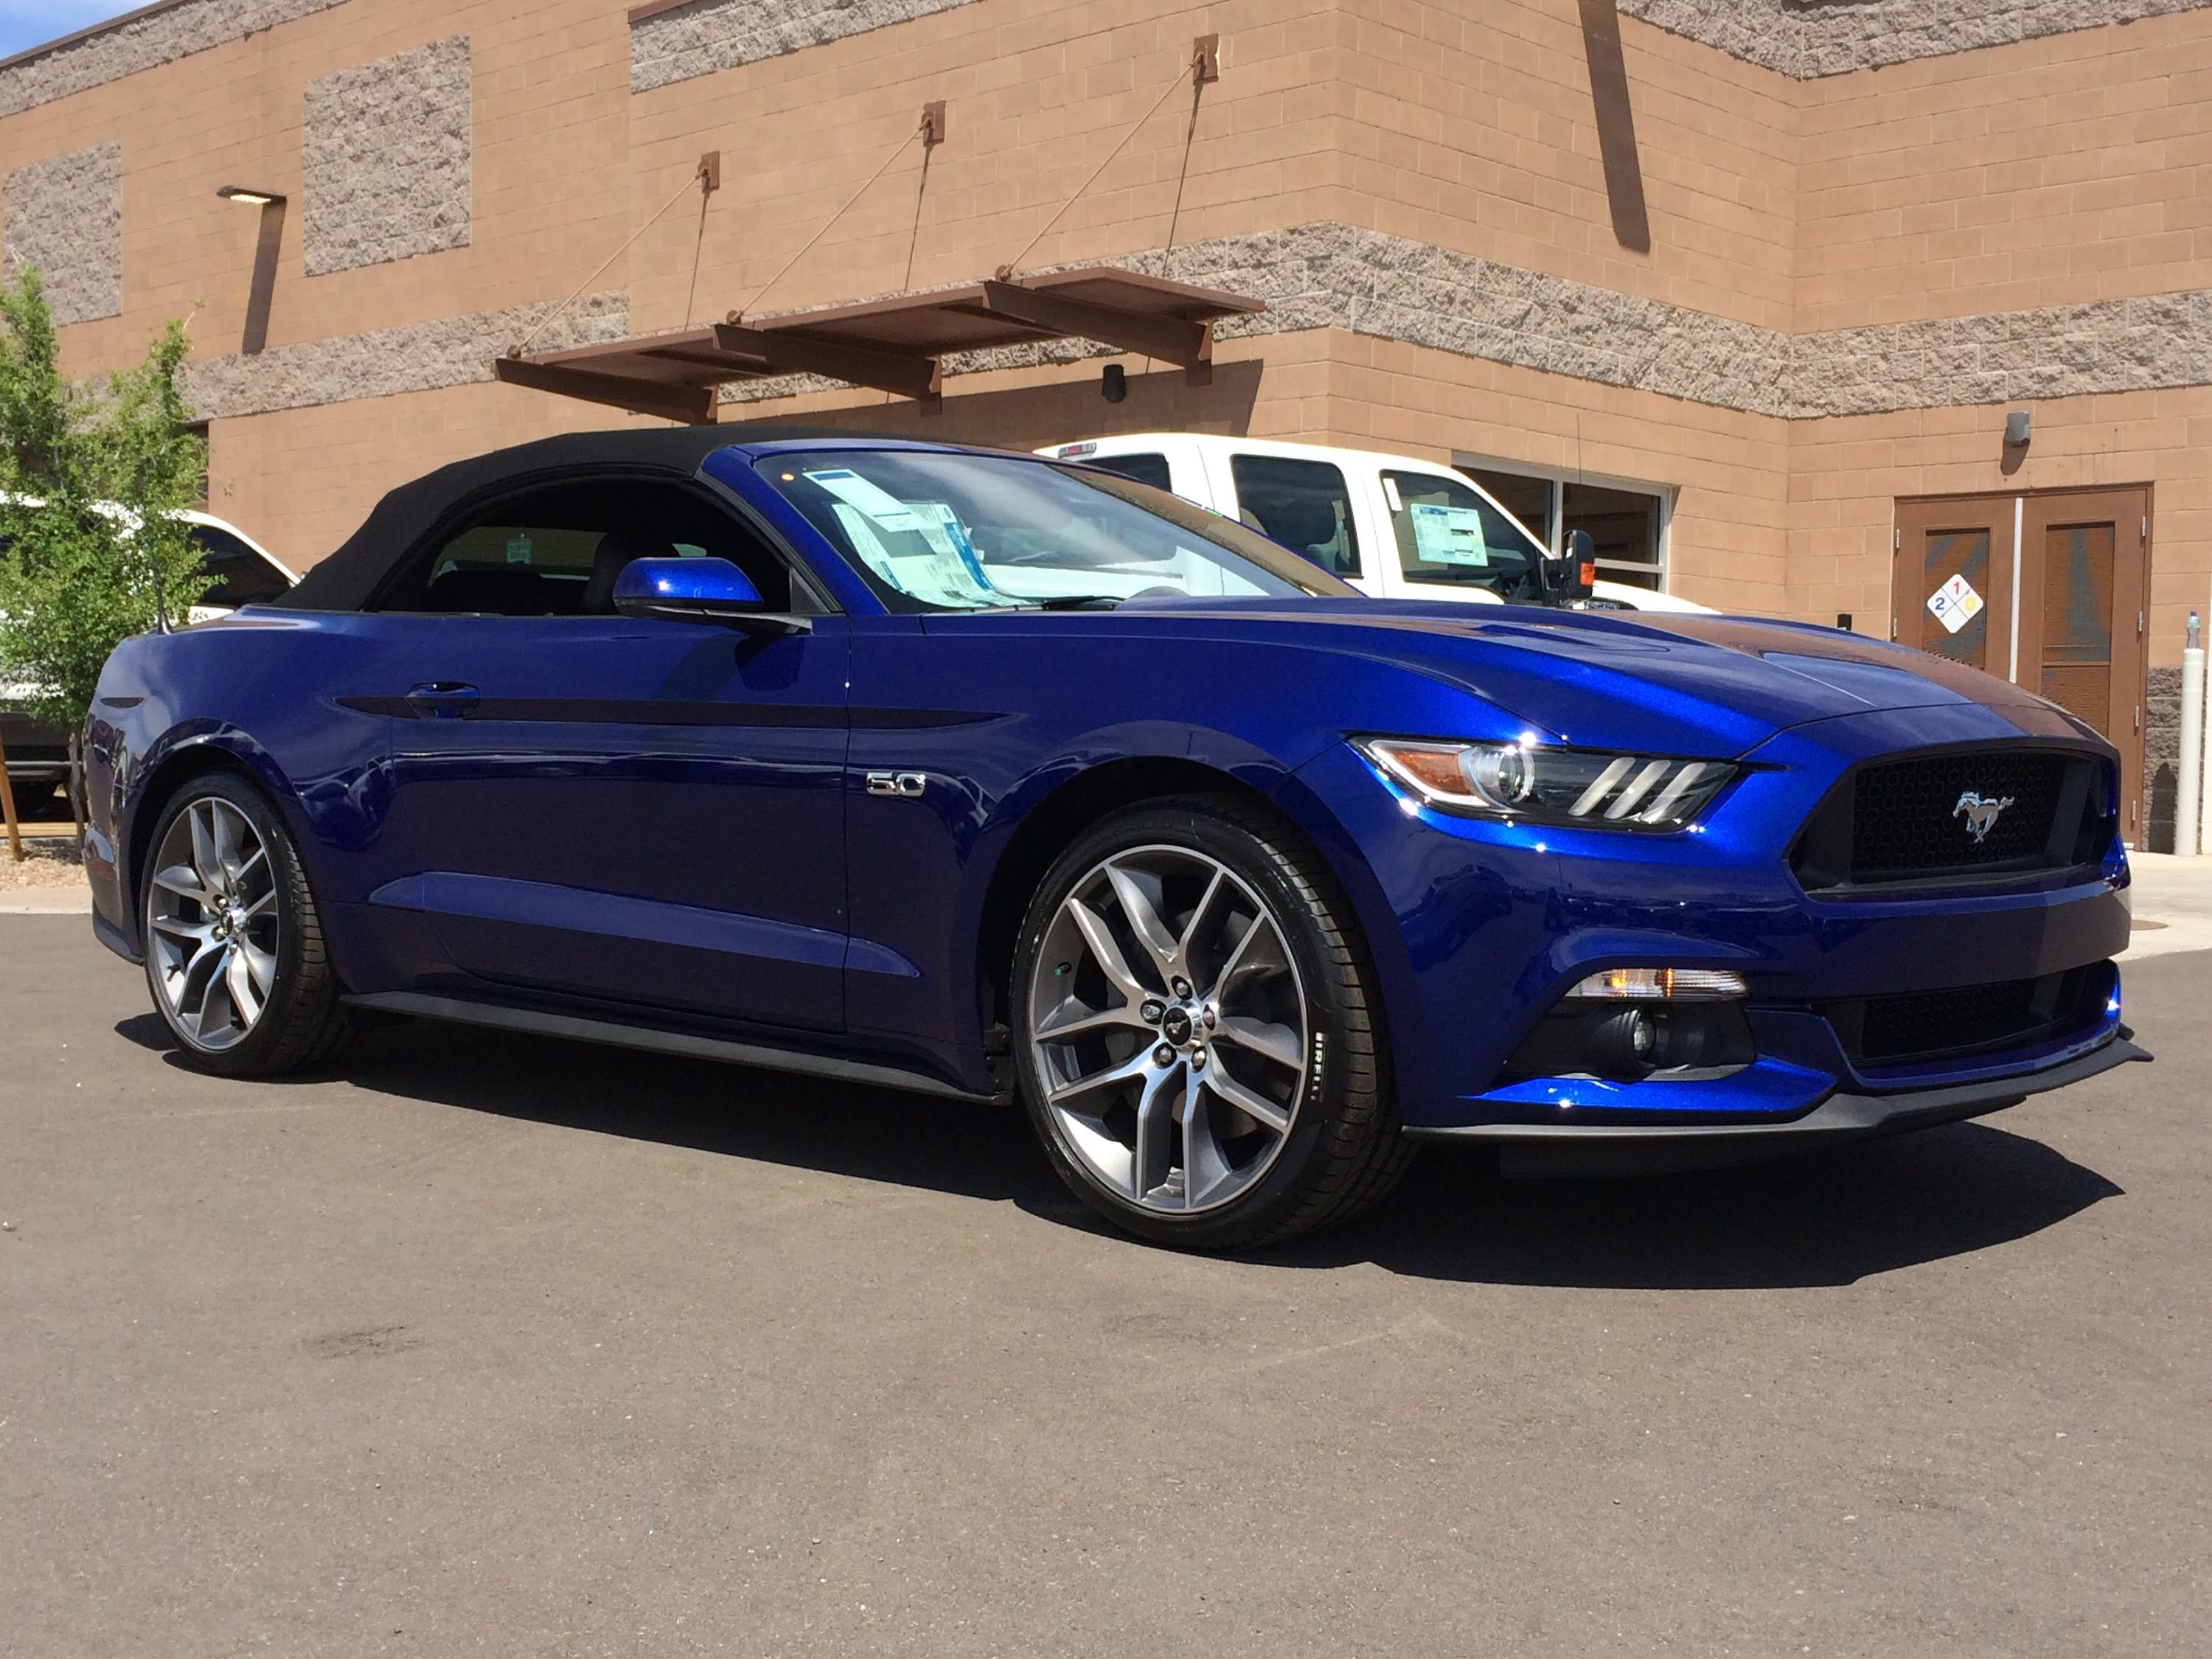 2015 mustang gt convertible deep impact blue And it does ...